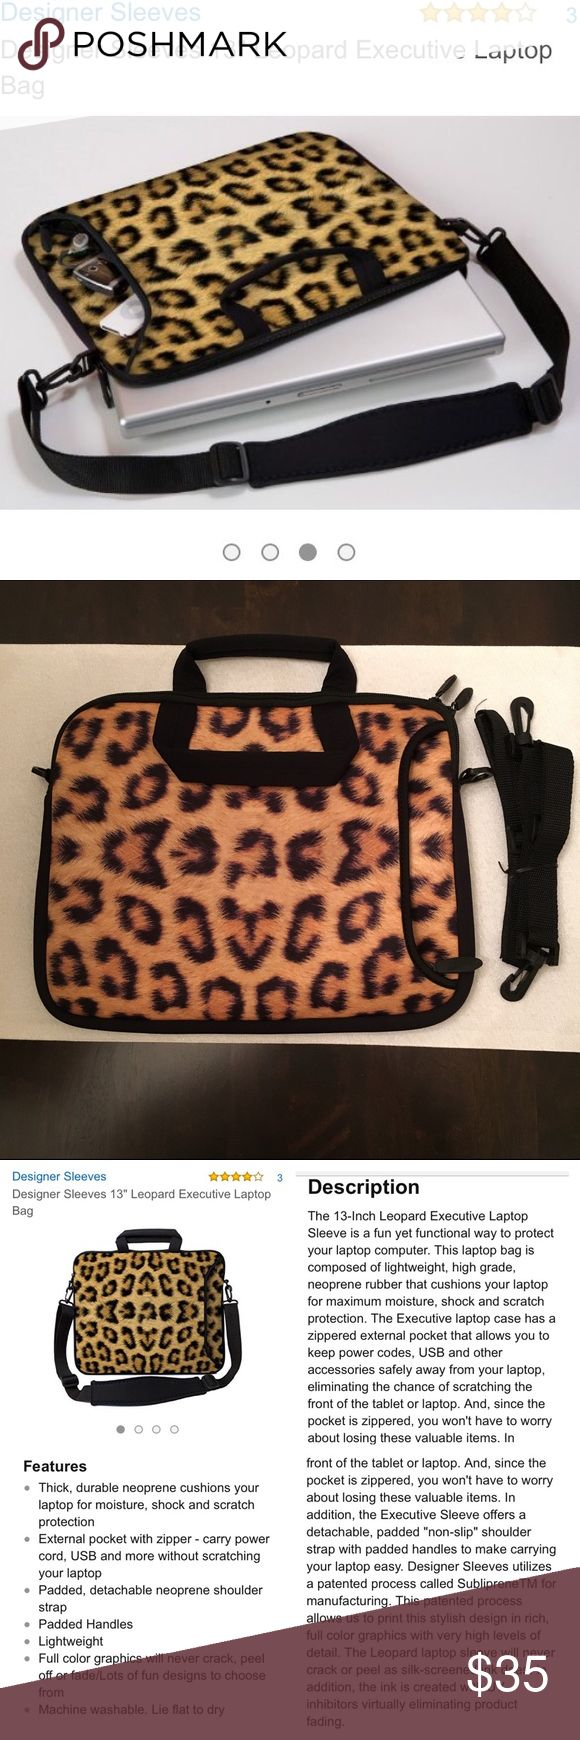 """NWOT 13"""" Designer Sleeves leopard laptop bag Purchased on Amazon (hence no tags) but never used. Lightweight, high grade neoprene rubber is soft to the touch but strong enough to protect your laptop or tablet. See photos #4 and #5 for a complete description of features as stated in Amazon listing. Shoulder strap was never unfolded, is still tied up in original twistie. Is machine washable if needed. Great bag - fashionable AND functional! Designer Sleeves Bags Laptop Bags"""